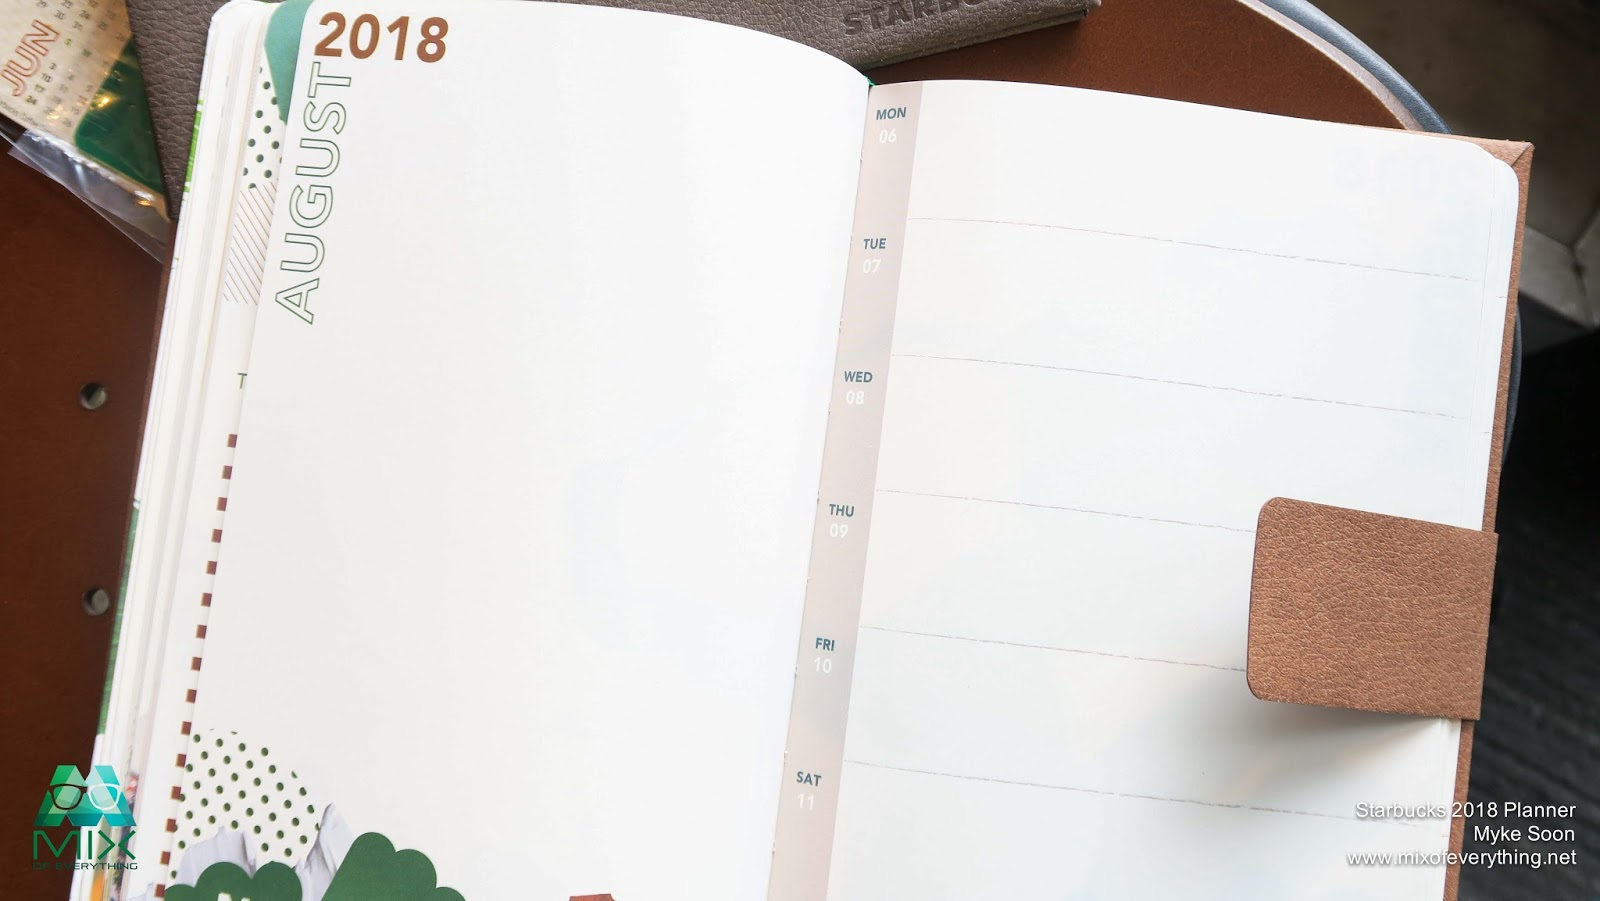 Why you should get the Limited Edition Starbucks 2018 Planner ...